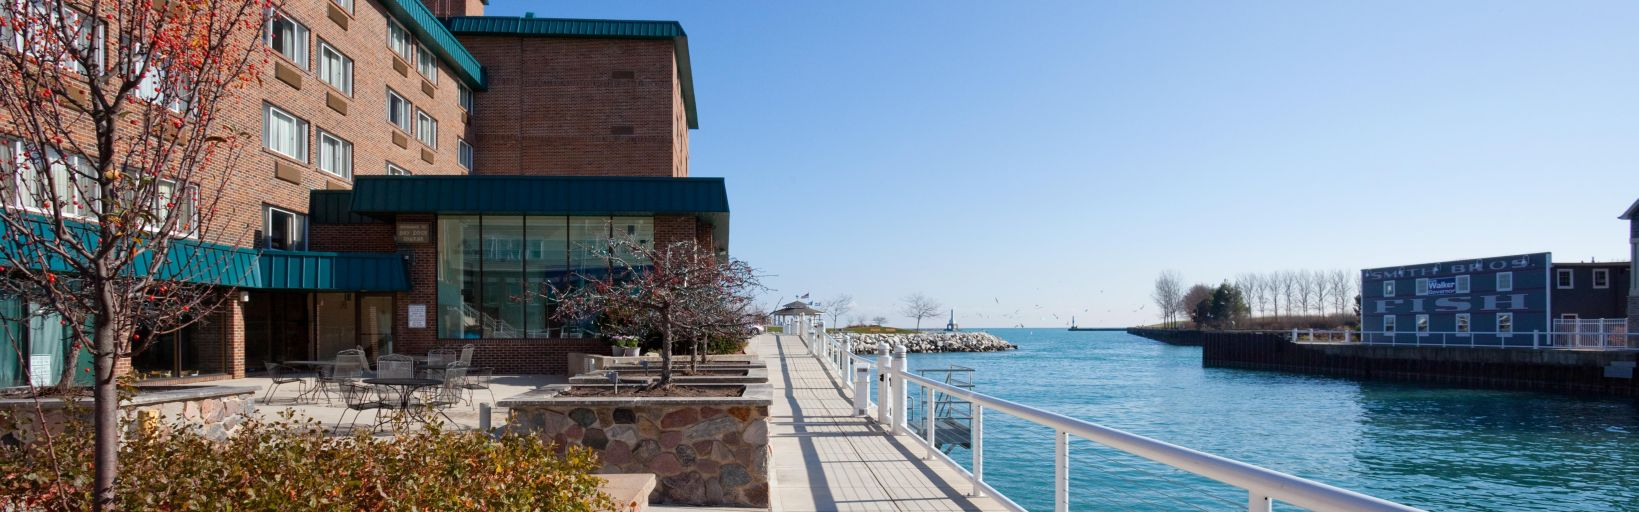 Front Desk Hotel Exterior In The Afternoon At Holiday Inn Port Washington